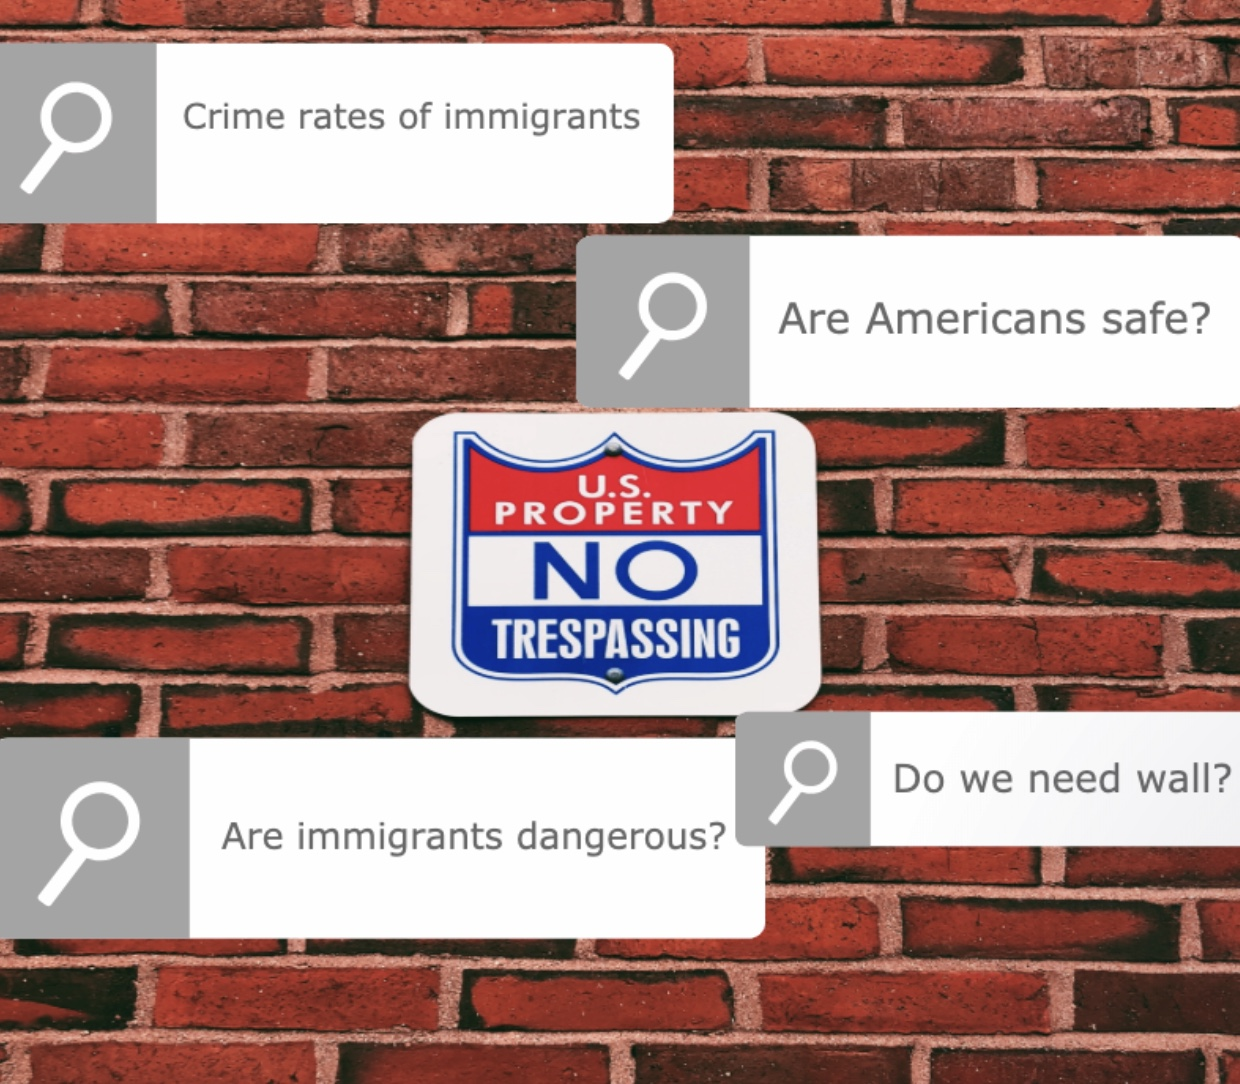 A plethora of questions are asked in regards to the border wall, as many people search for facts and statistics behind the polarizing issue.